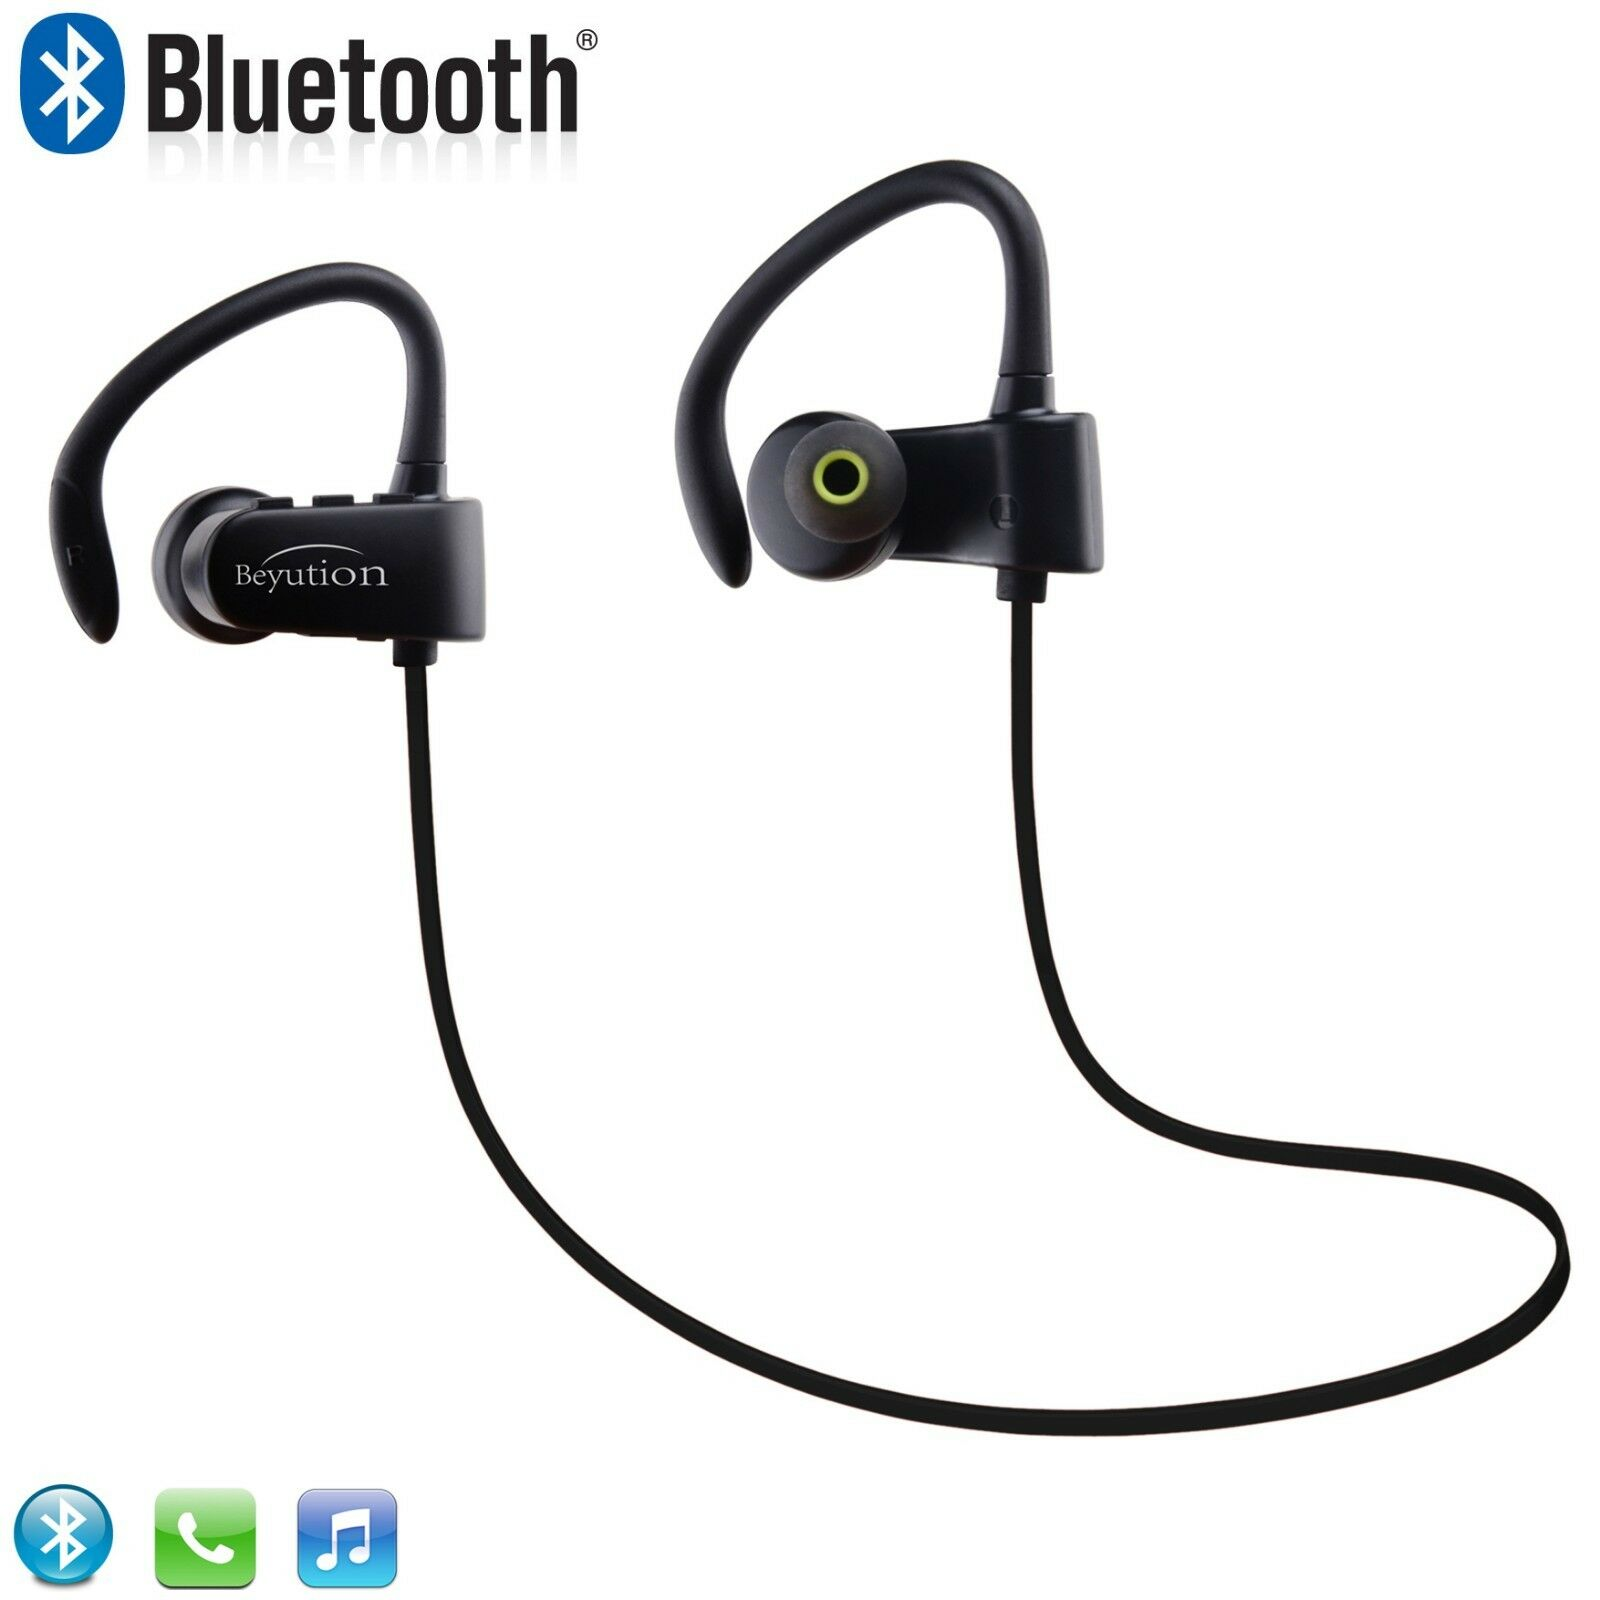 Best Bluetooth Wireless Earbuds Uk: Wireless Bluetooth Headset SPORT Stereo Headphone Earphone For IPhone Samsung LG